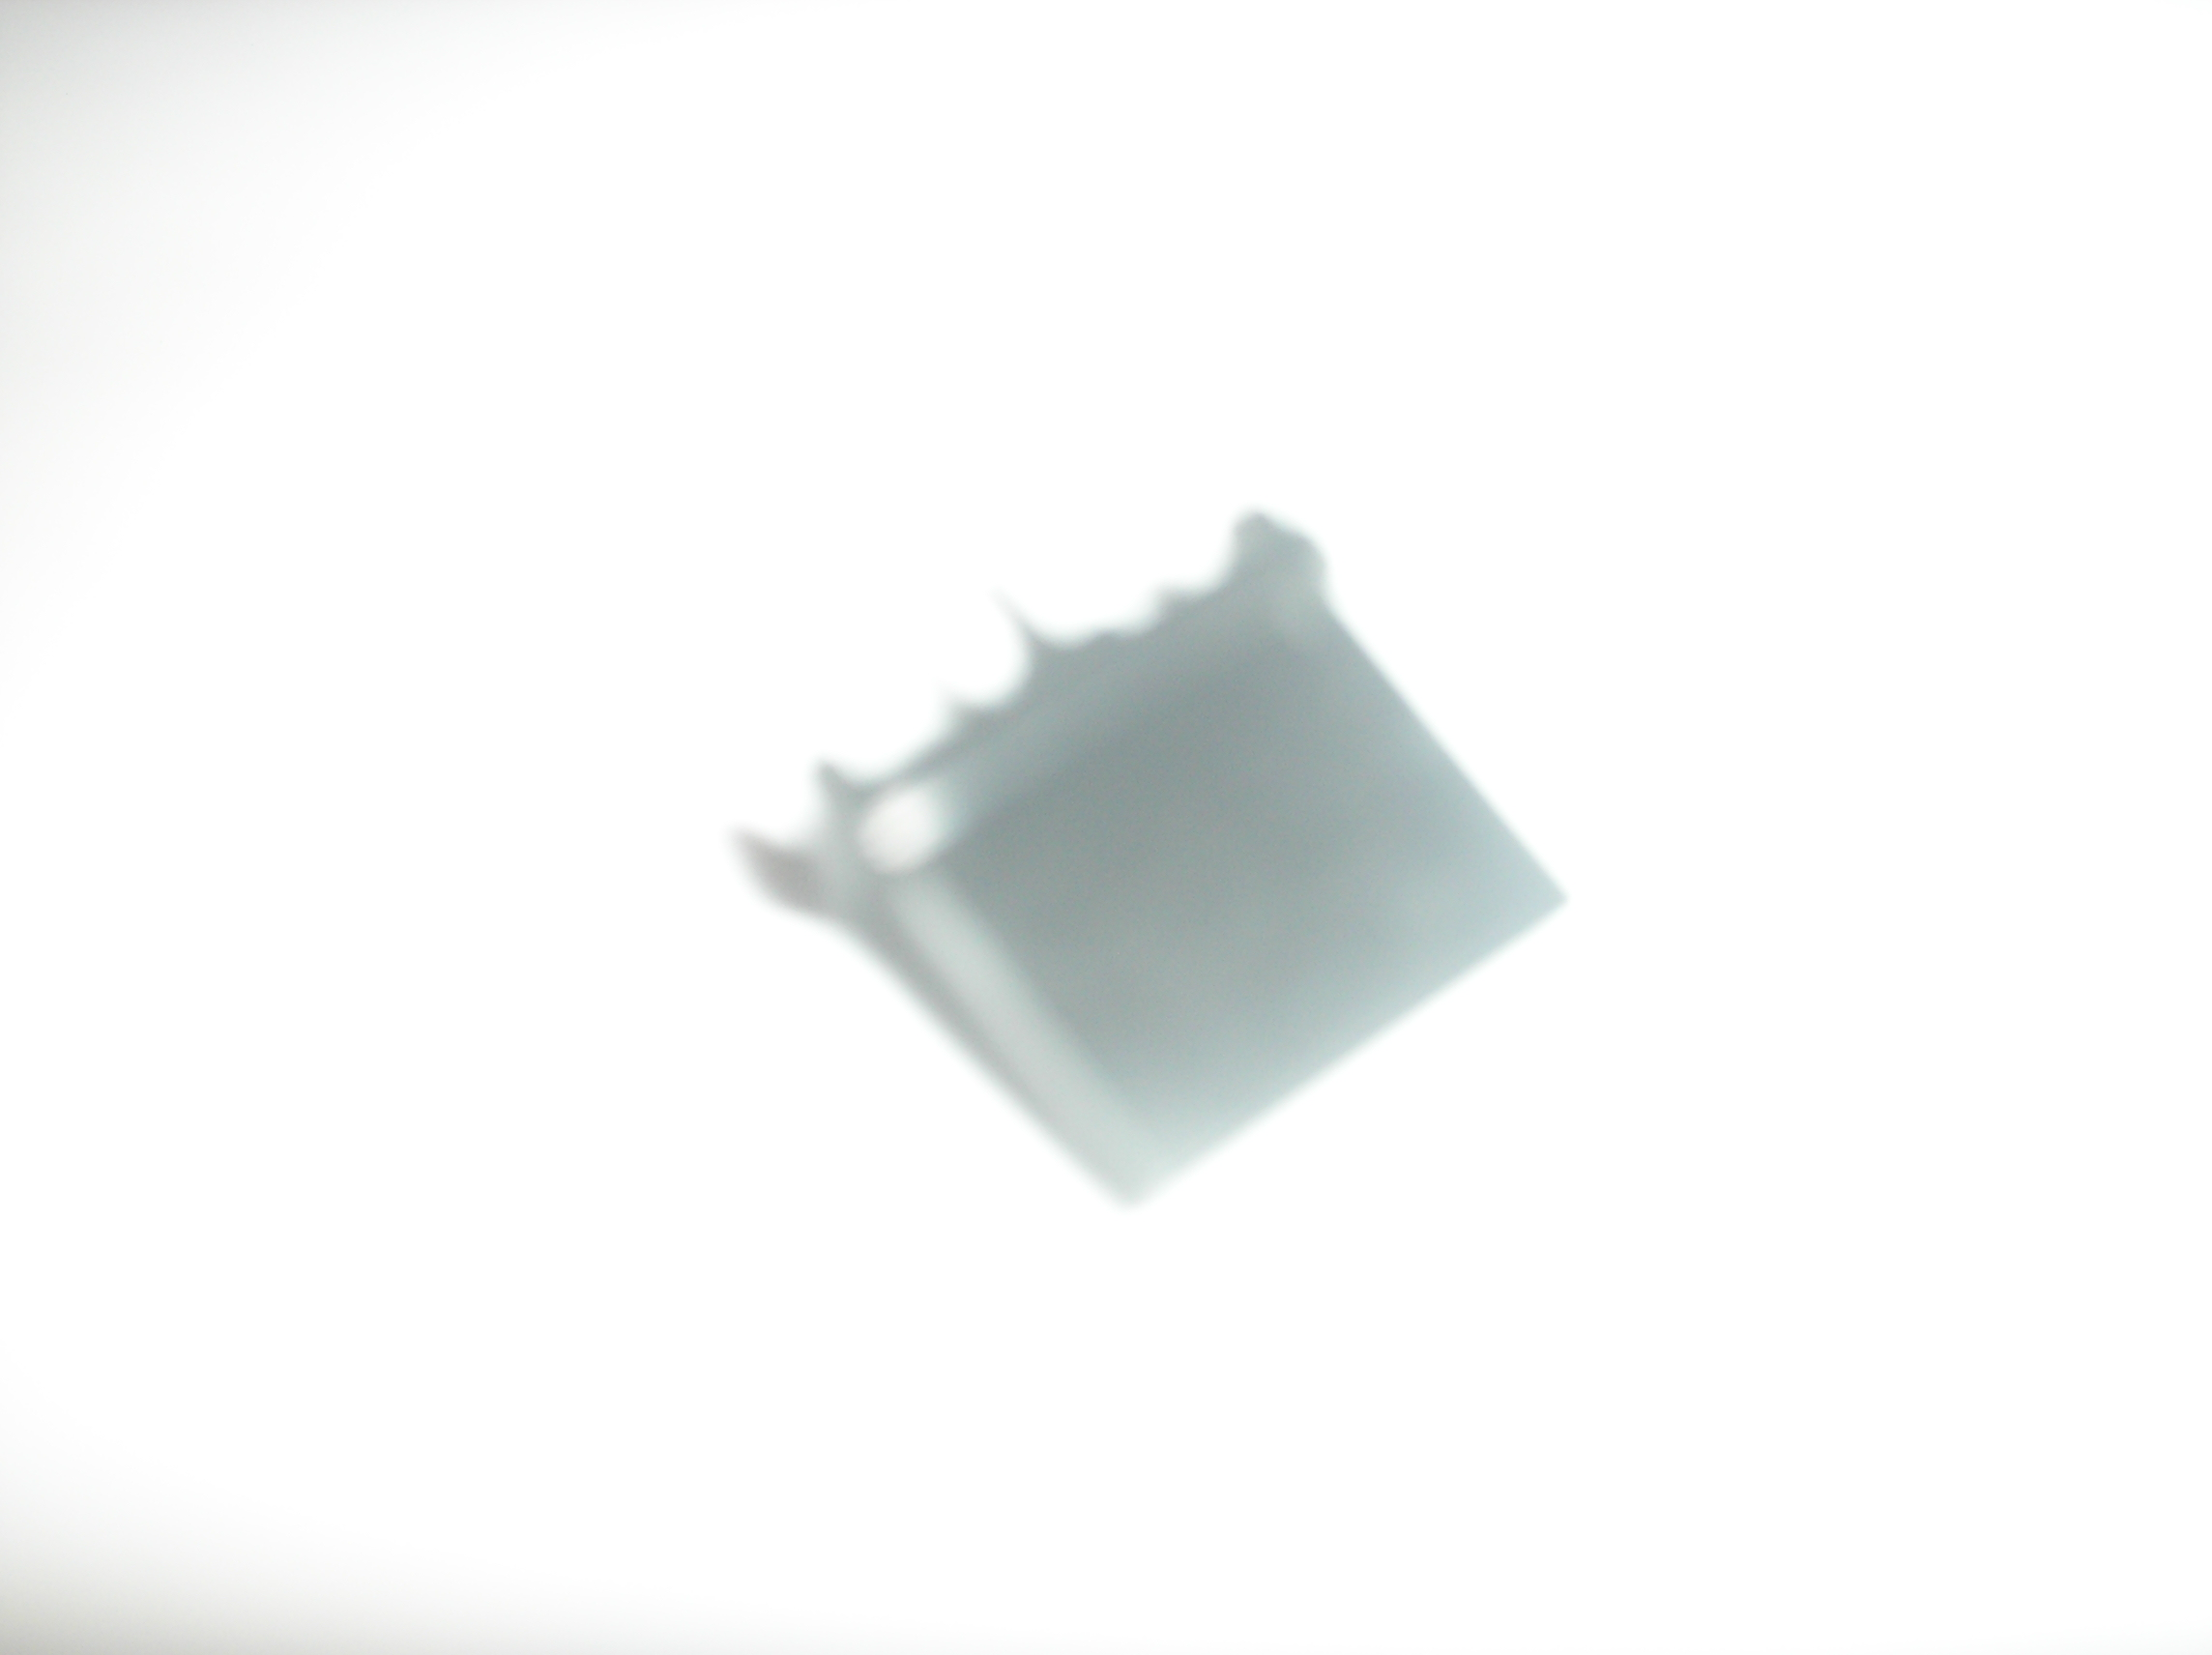 RS-T230 Cassette Deck Eject Button . Item is used.. Part number isSBC1007